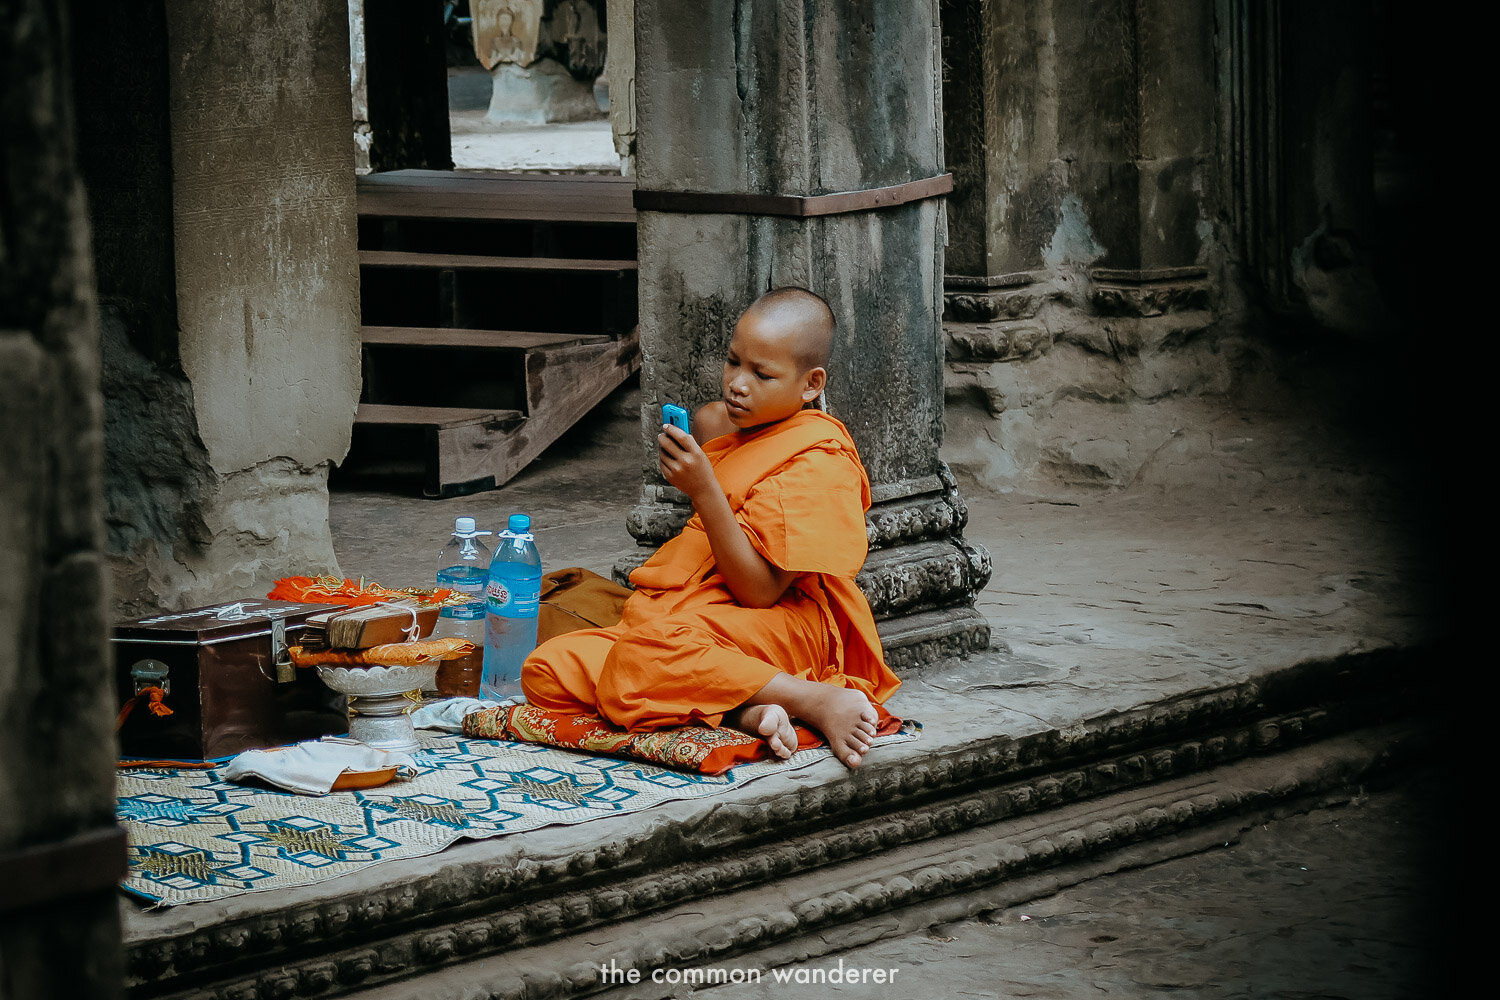 A monk on his phone in Angkor Wat, Cambodia